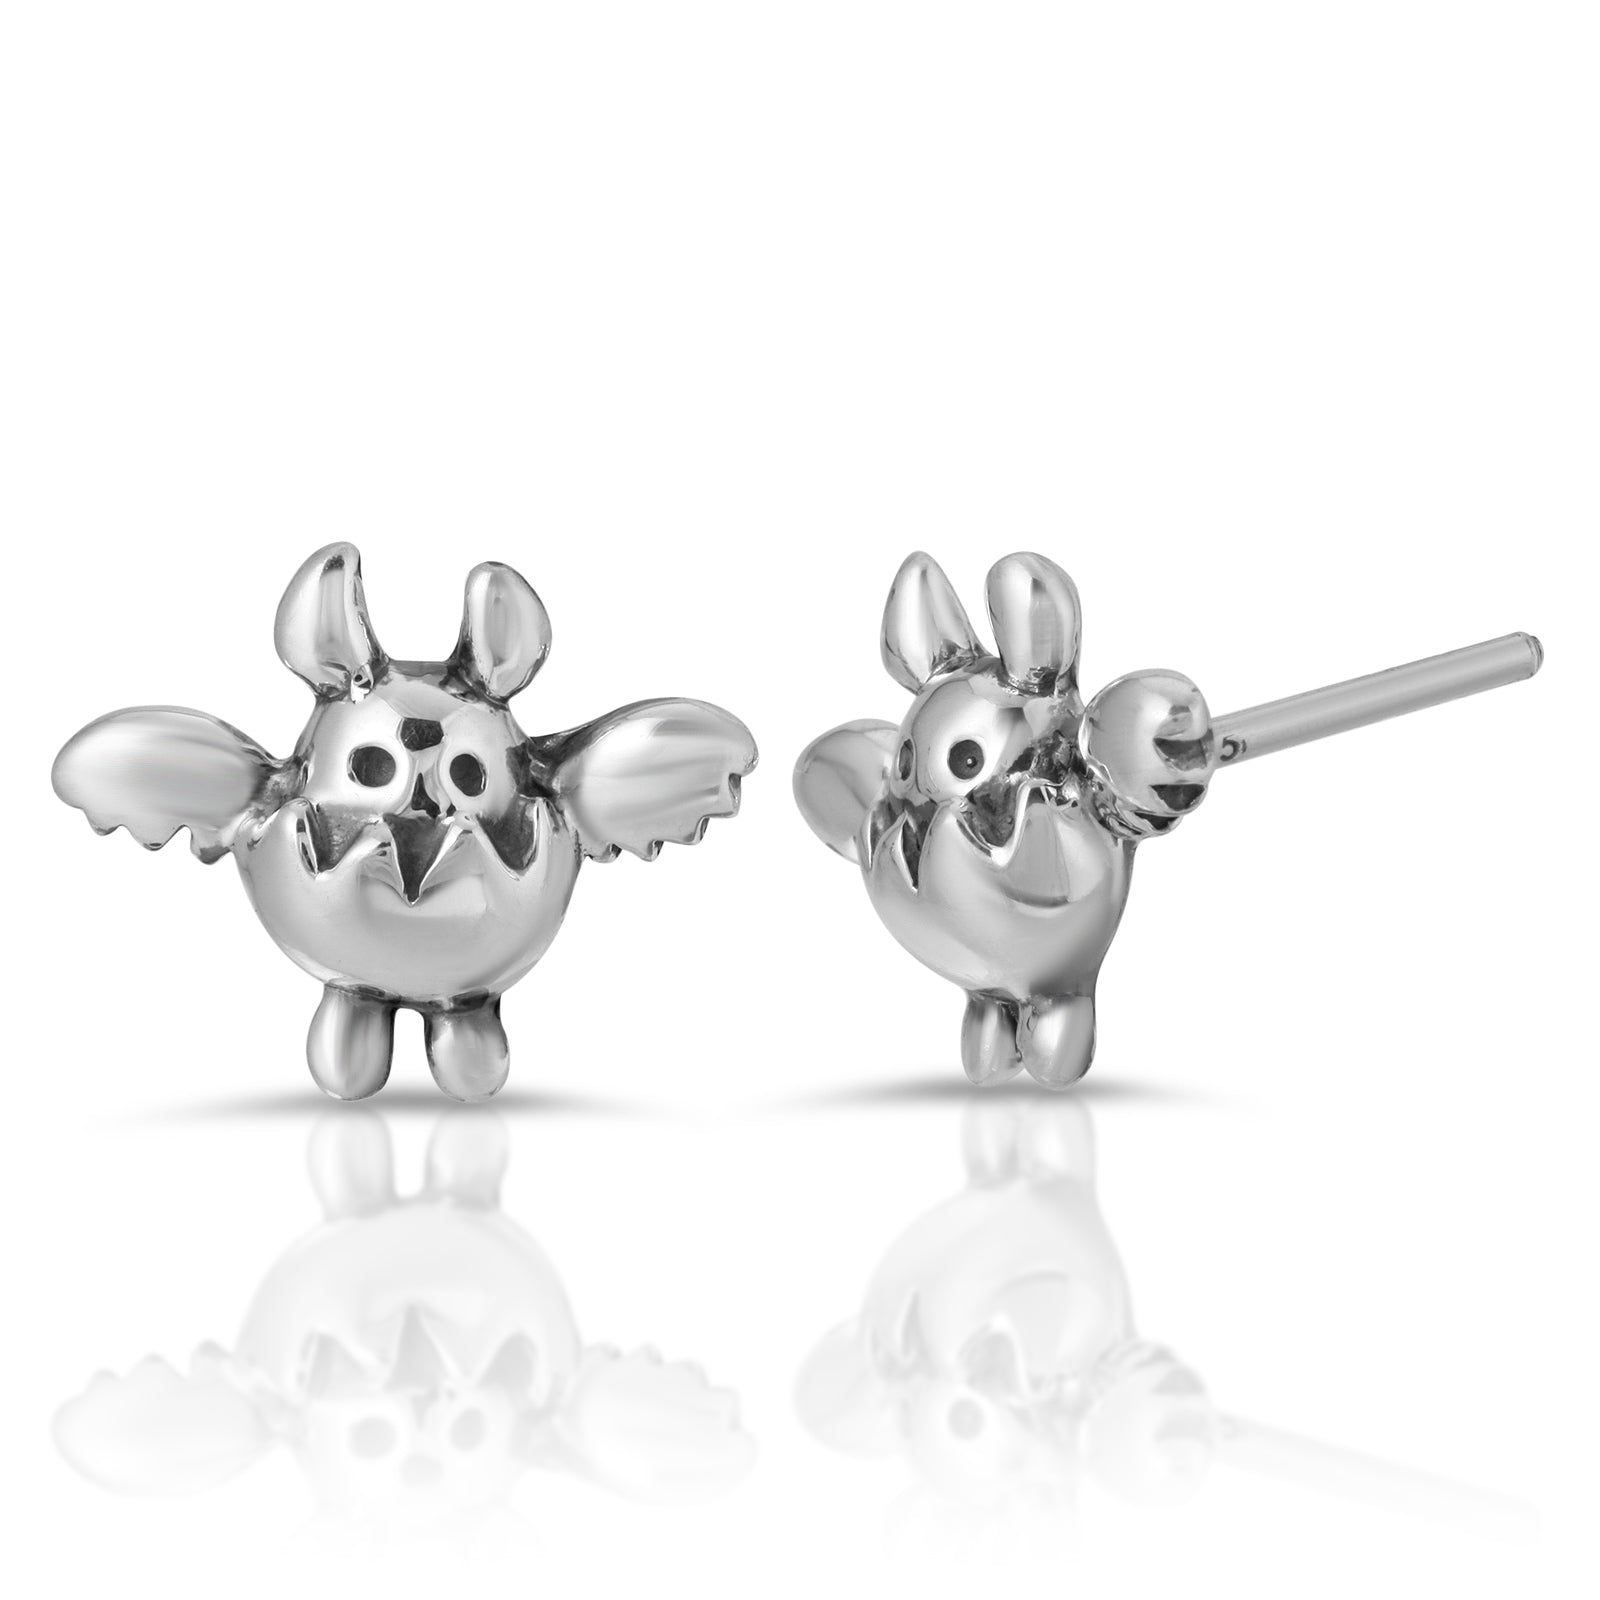 The W brothers Monsterz Collection featuring our handcrafted Egg Monster Stud Earrings, designed from premium Grade A 925 Sterling Silver, perfect for a fashionable & cute look for men and women. Available in silver, gold and rose gold at www.thewbros.com